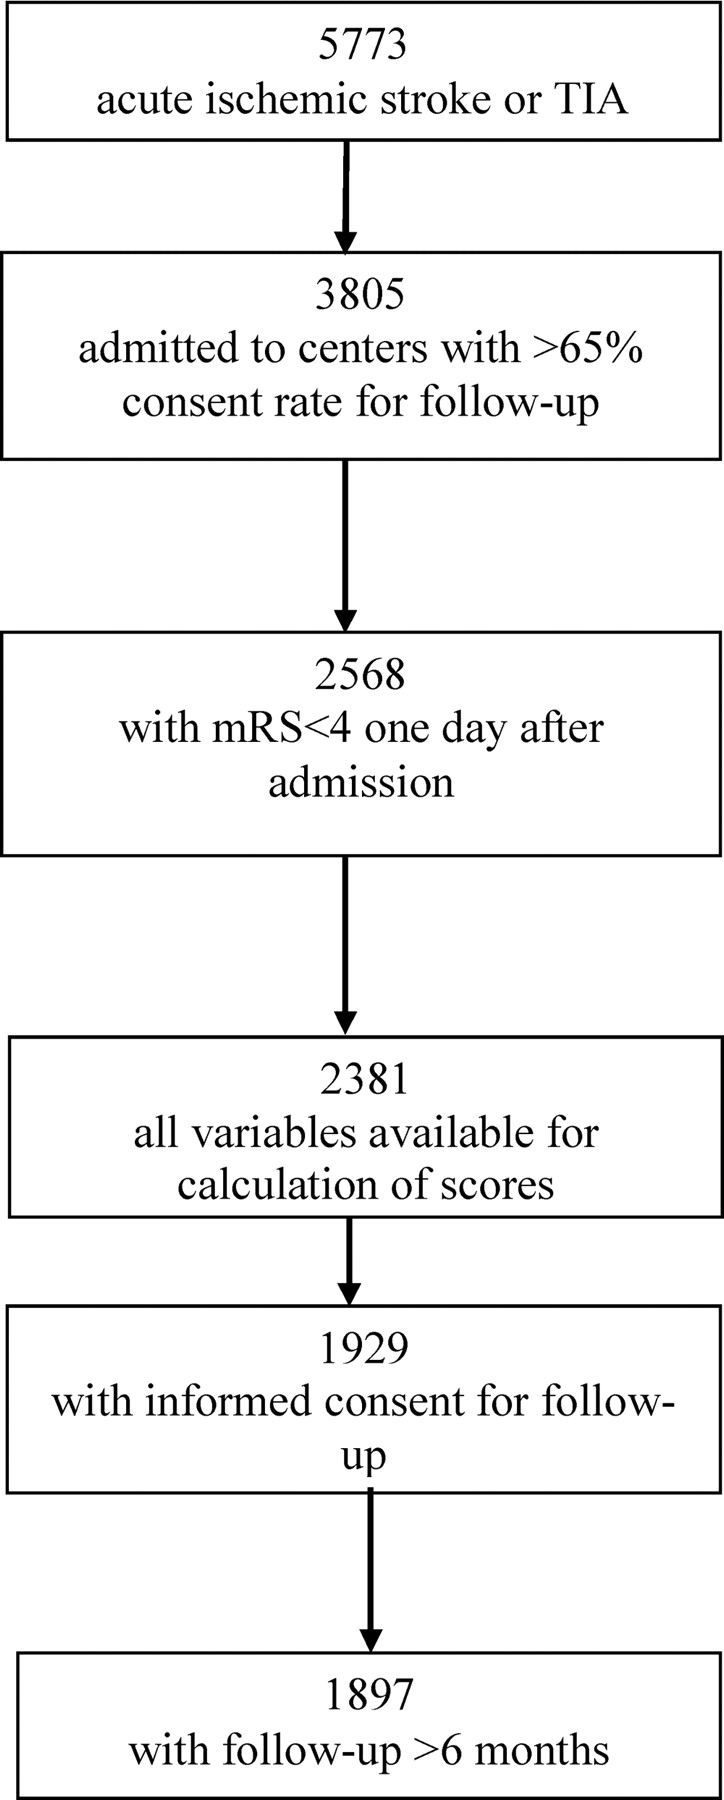 Prediction of Recurrent Stroke and Vascular Death in